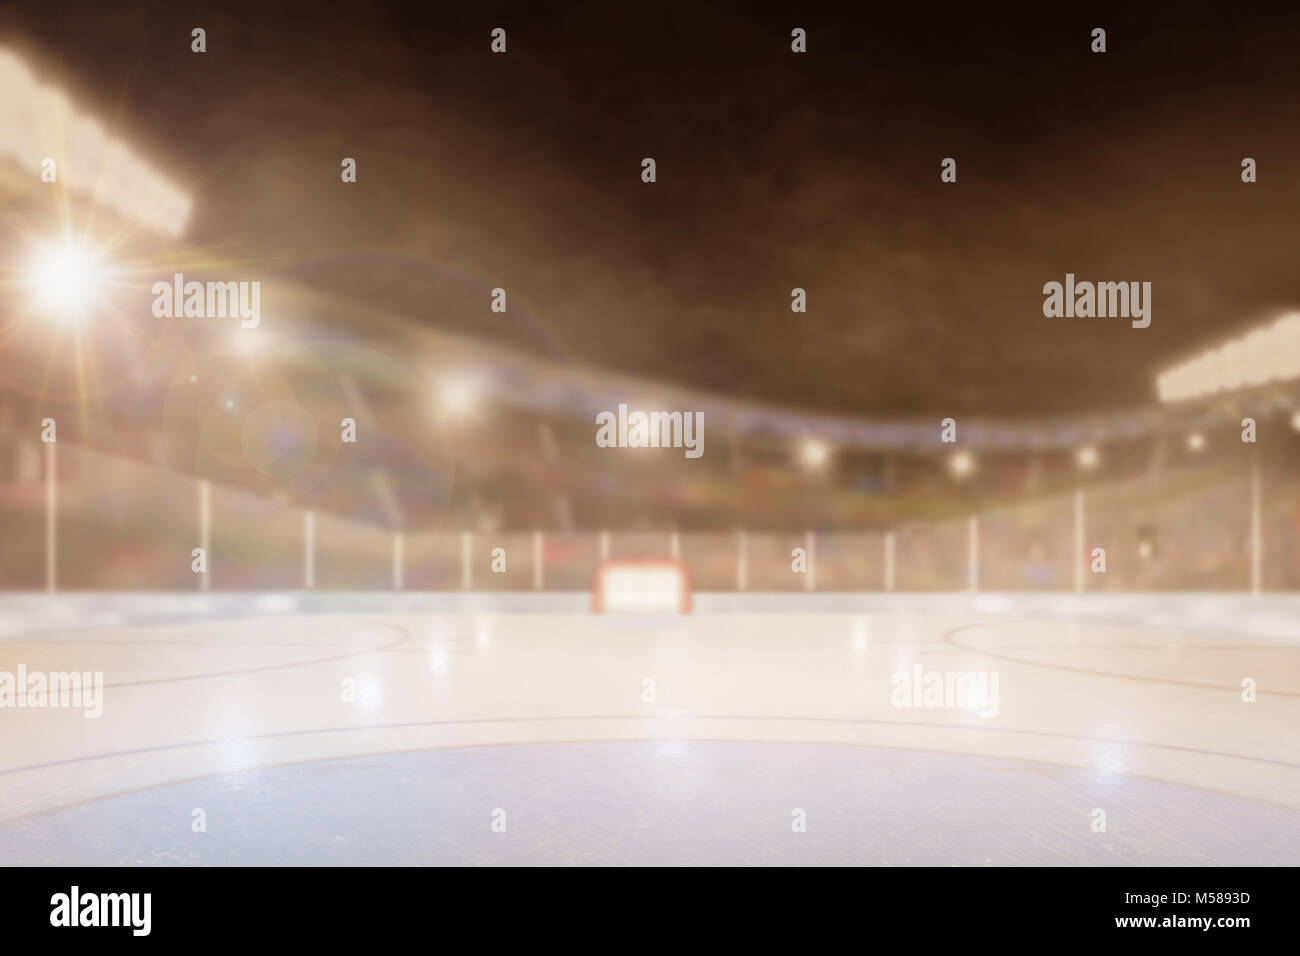 Brightly Lit Outdoor Ice Hockey Rink Arena With Focus On Foreground And  Shallow Depth Of Field